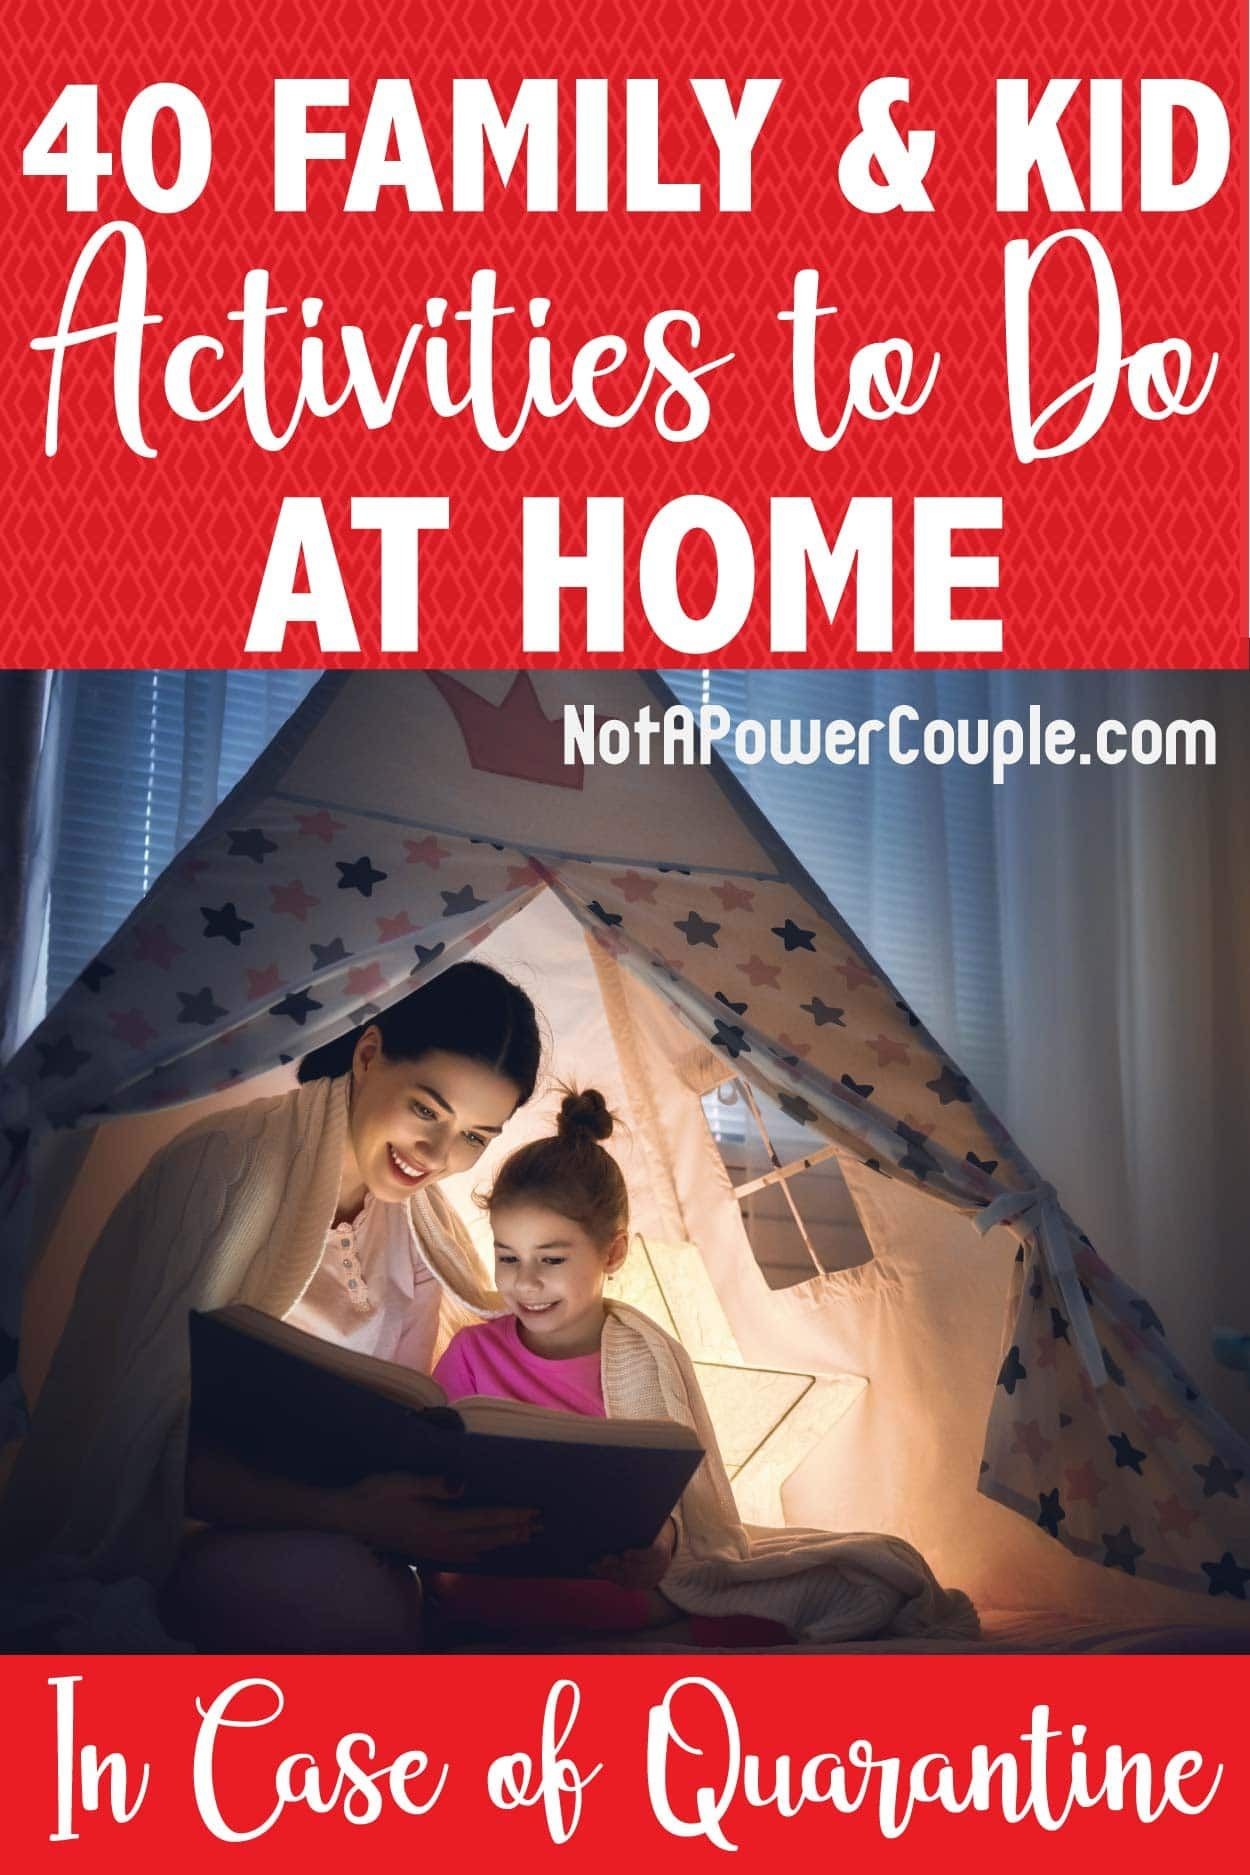 Pin on Family Fun & Togetherness